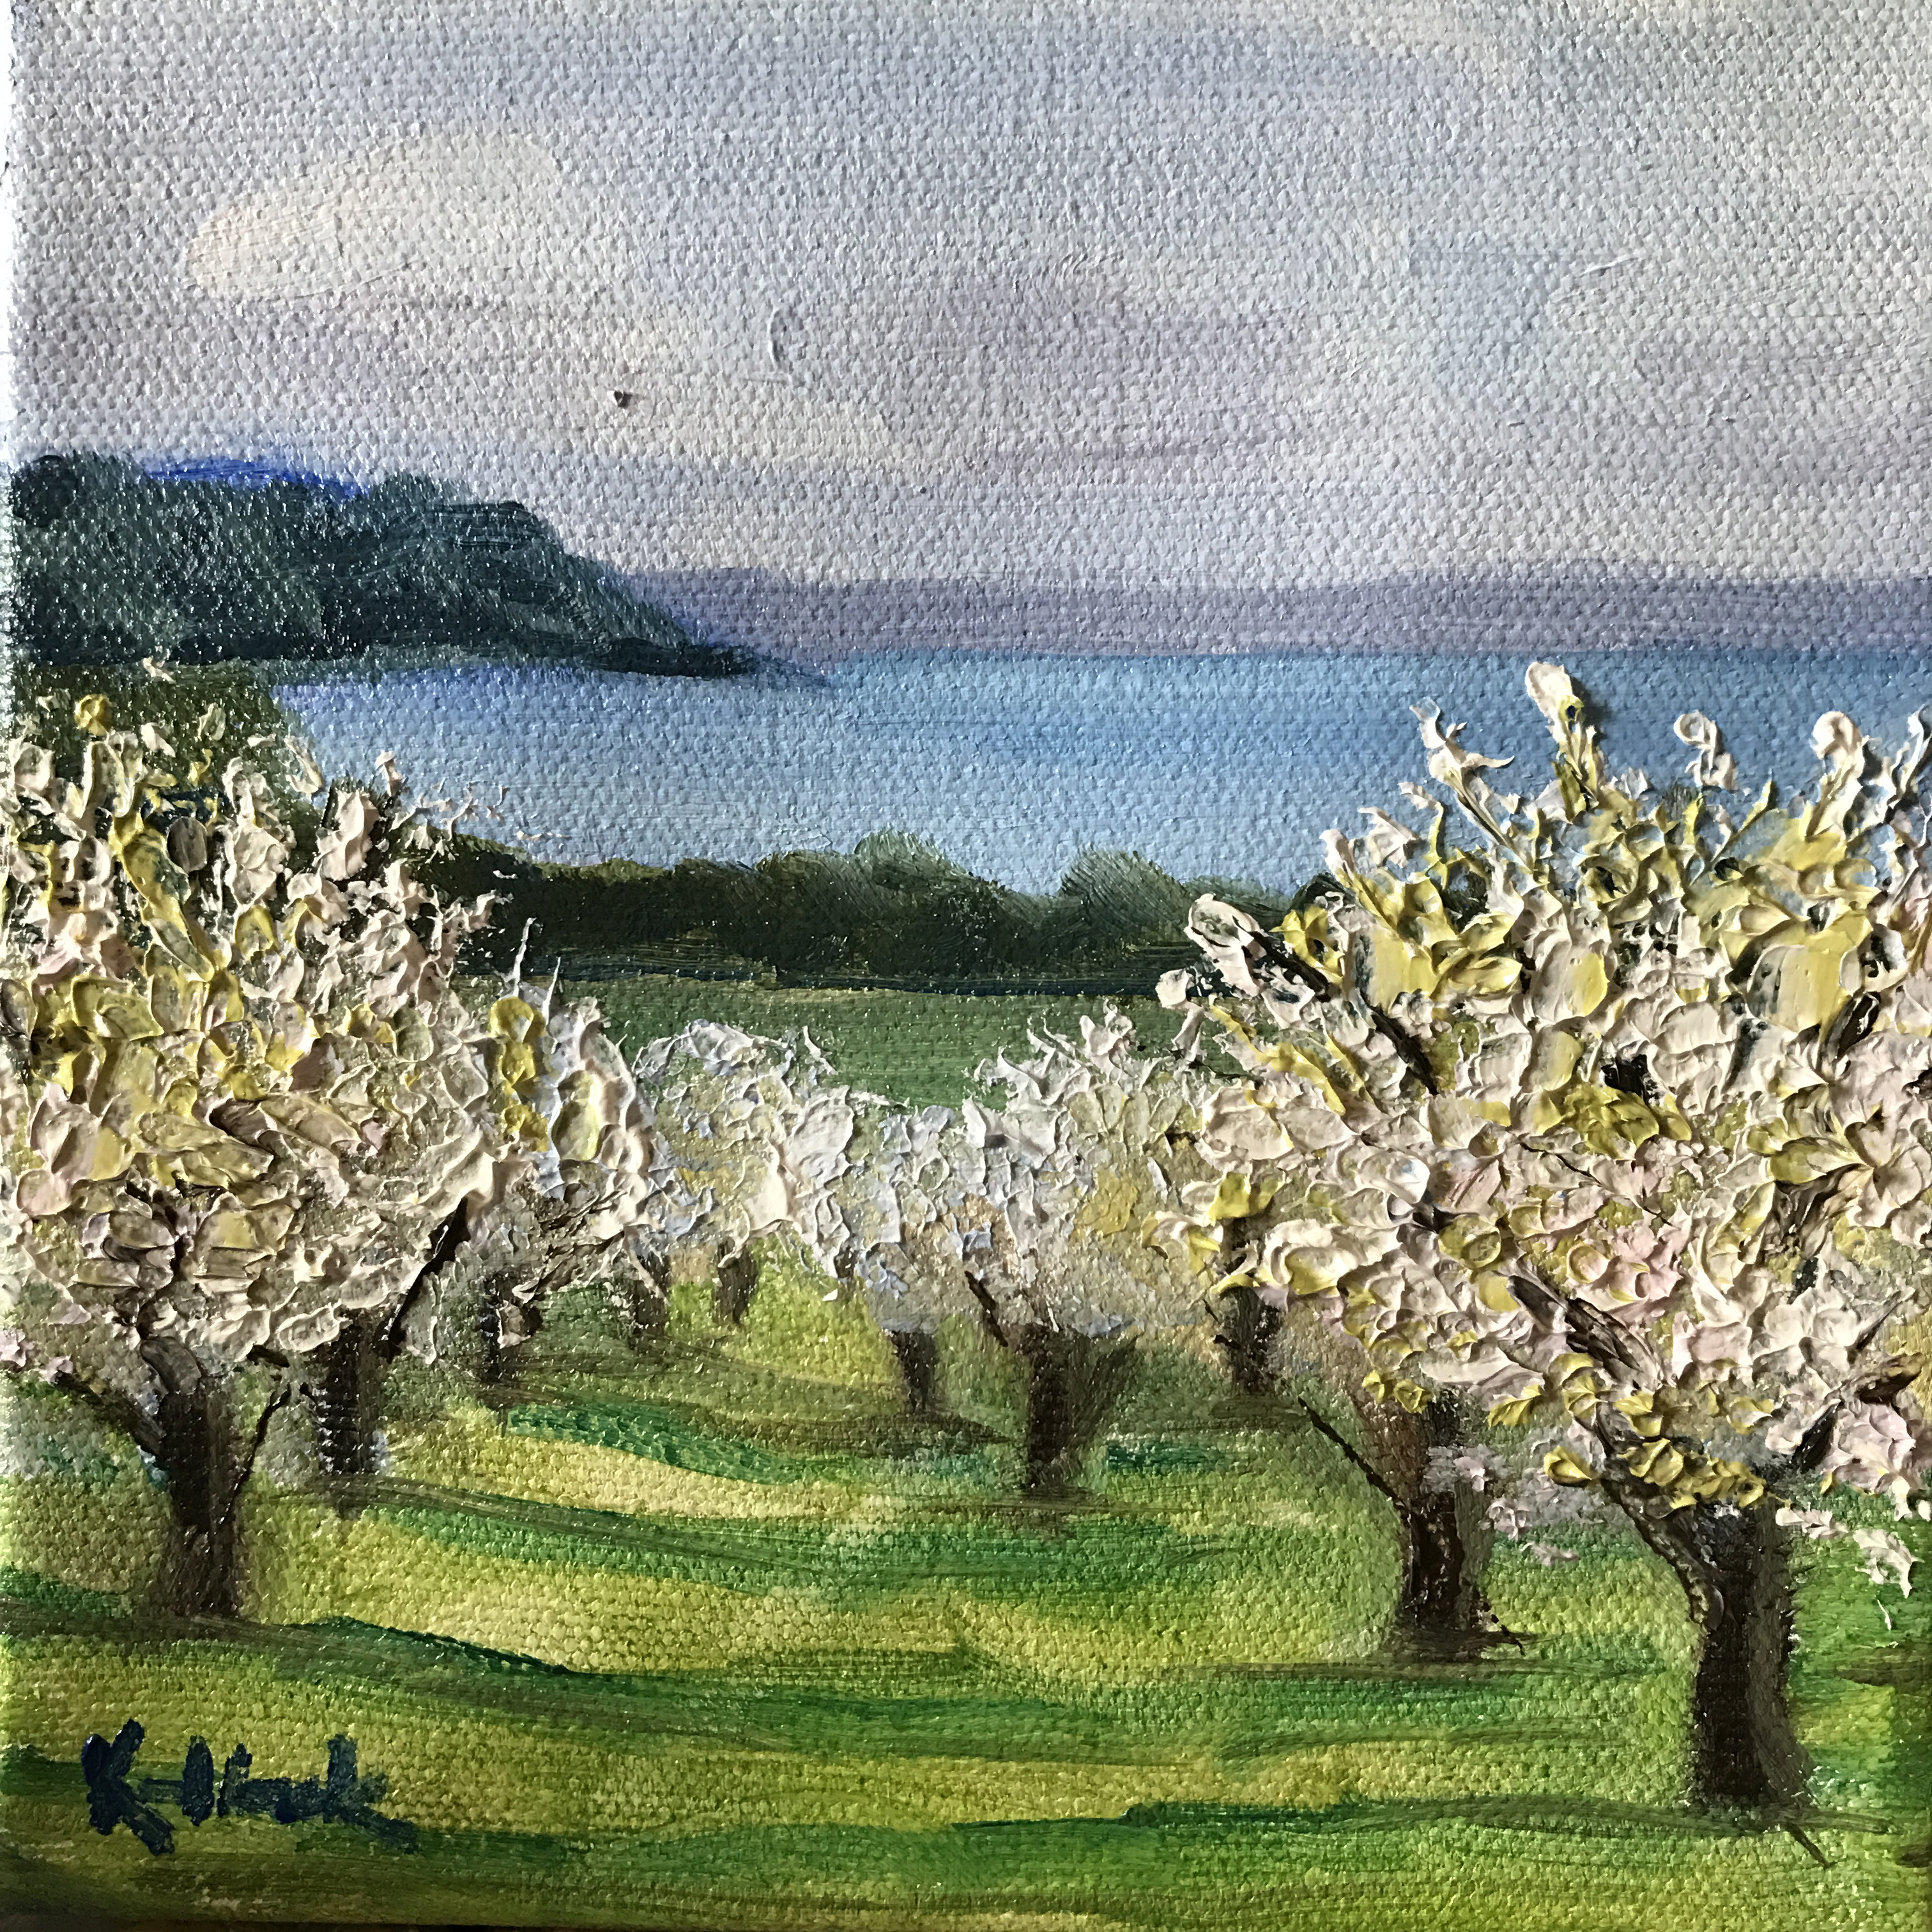 Blossom Day painting, WOMPBlossomday, cherry blossoms in traverse city